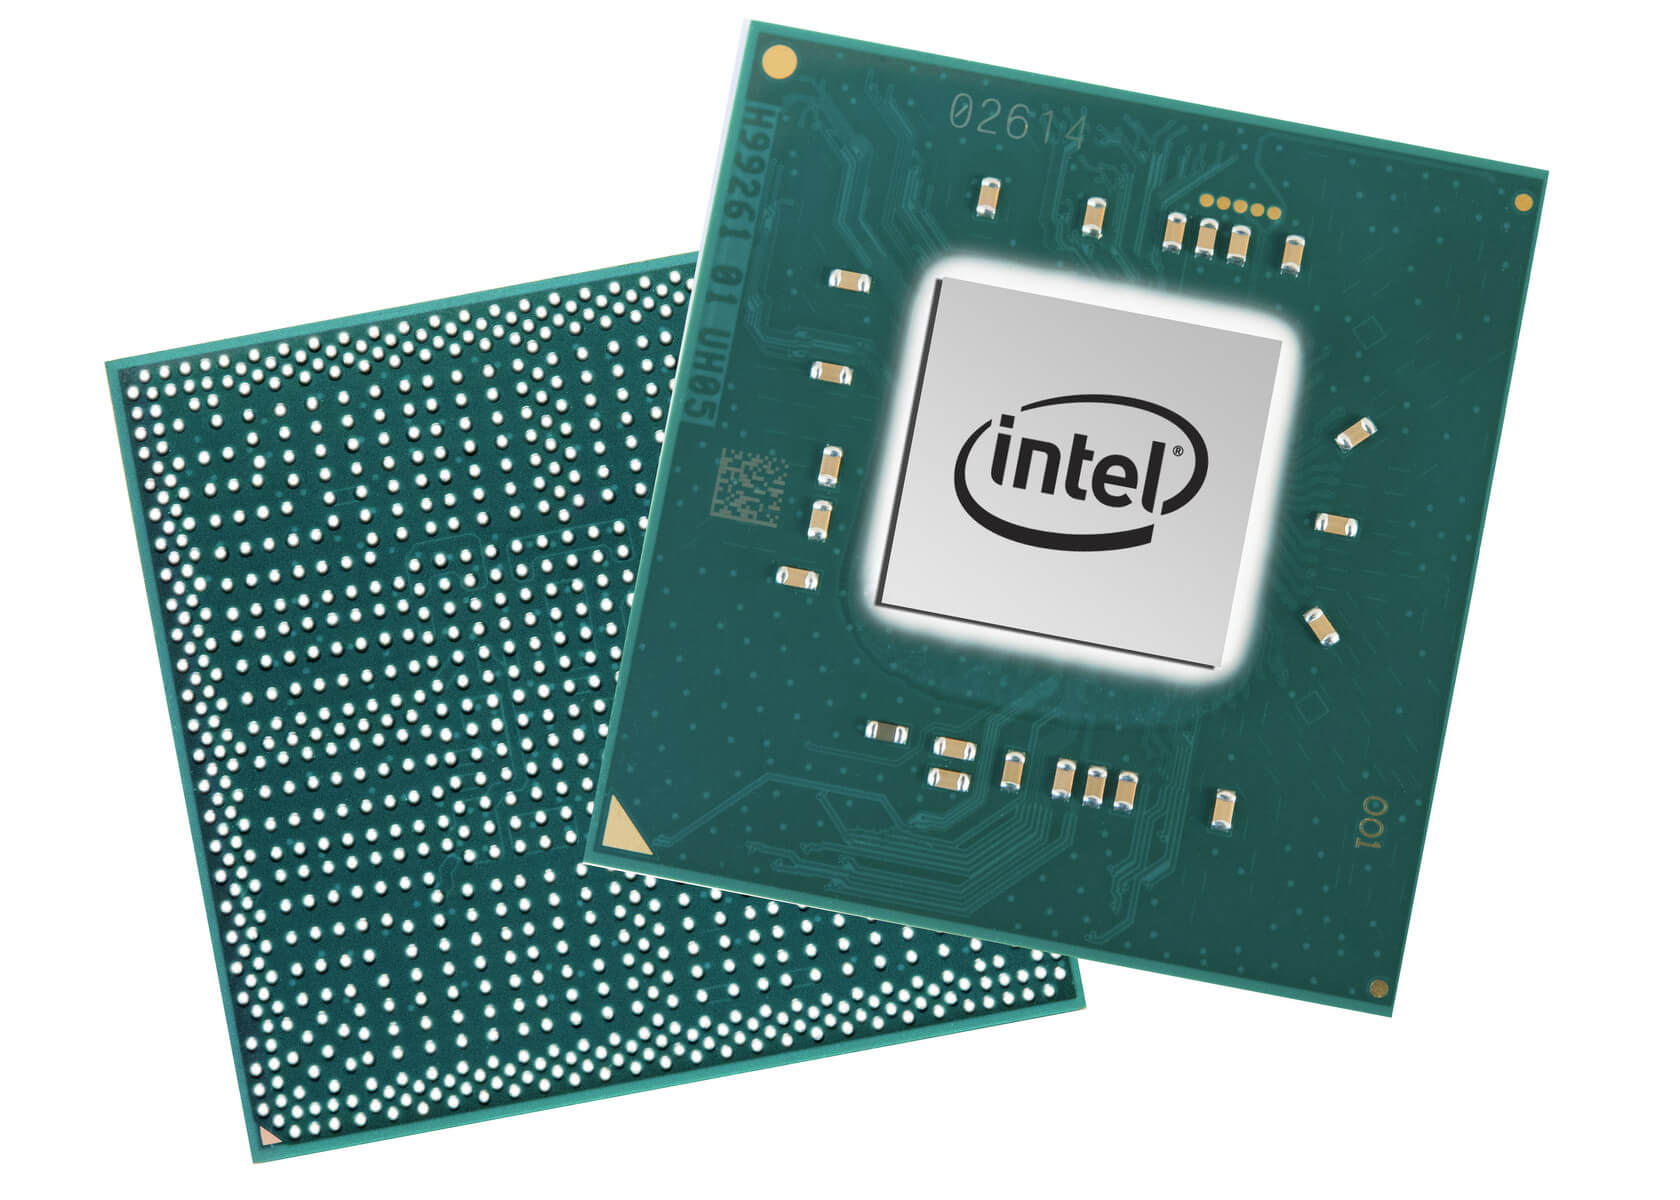 INTEL CORE I7-2760QM 2,4 GHz 6 MB CACHE FCPGA988